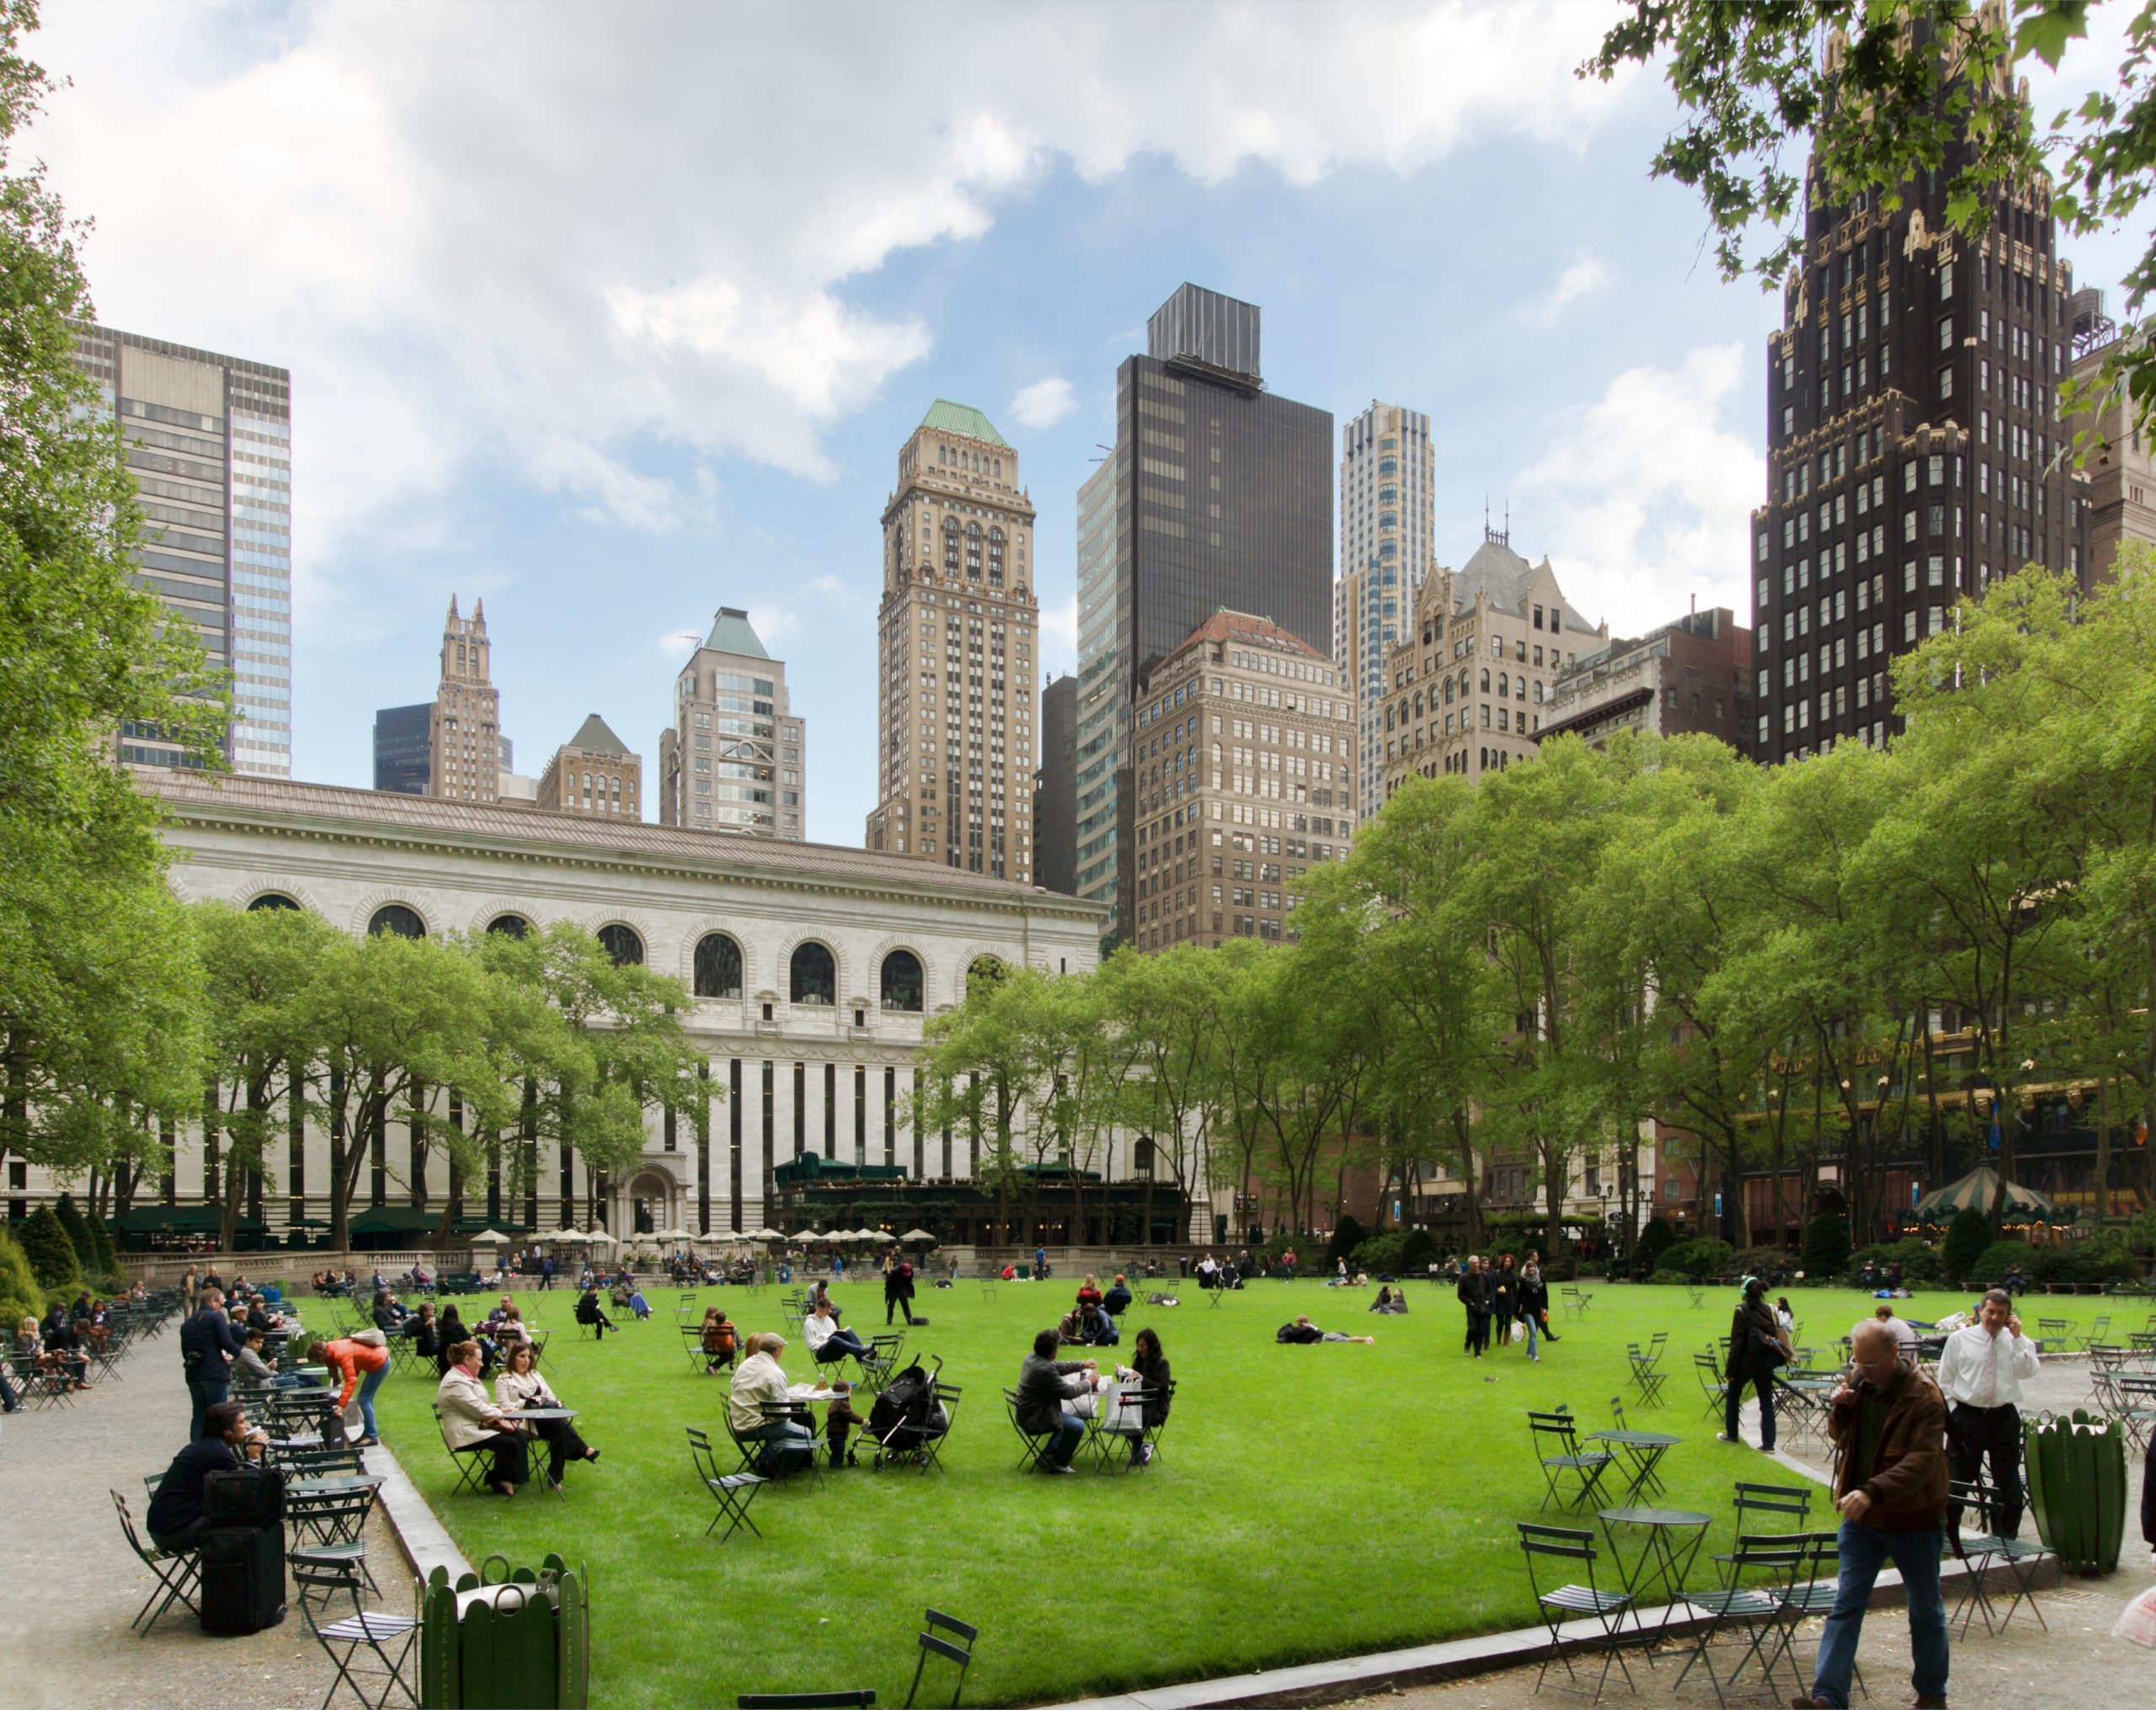 Bryant Park - Where To Stay In New York When Visiting For The First Time